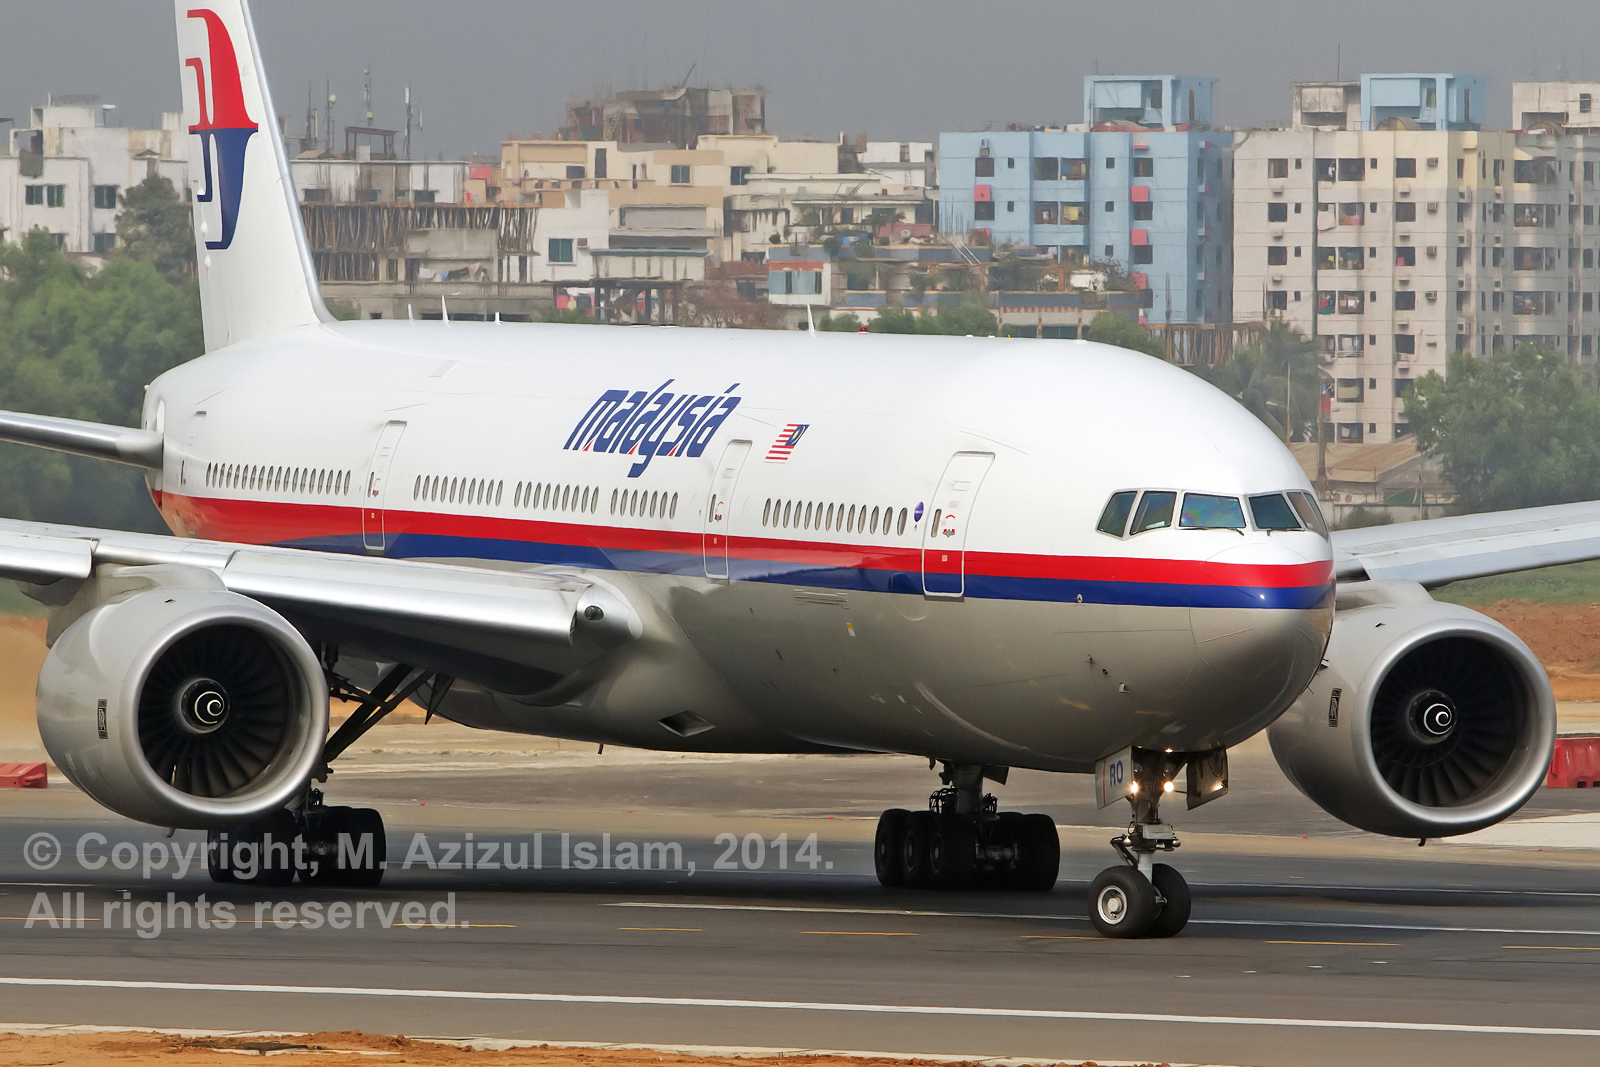 Photo And Video Tribute To Missing Malaysia Airlines